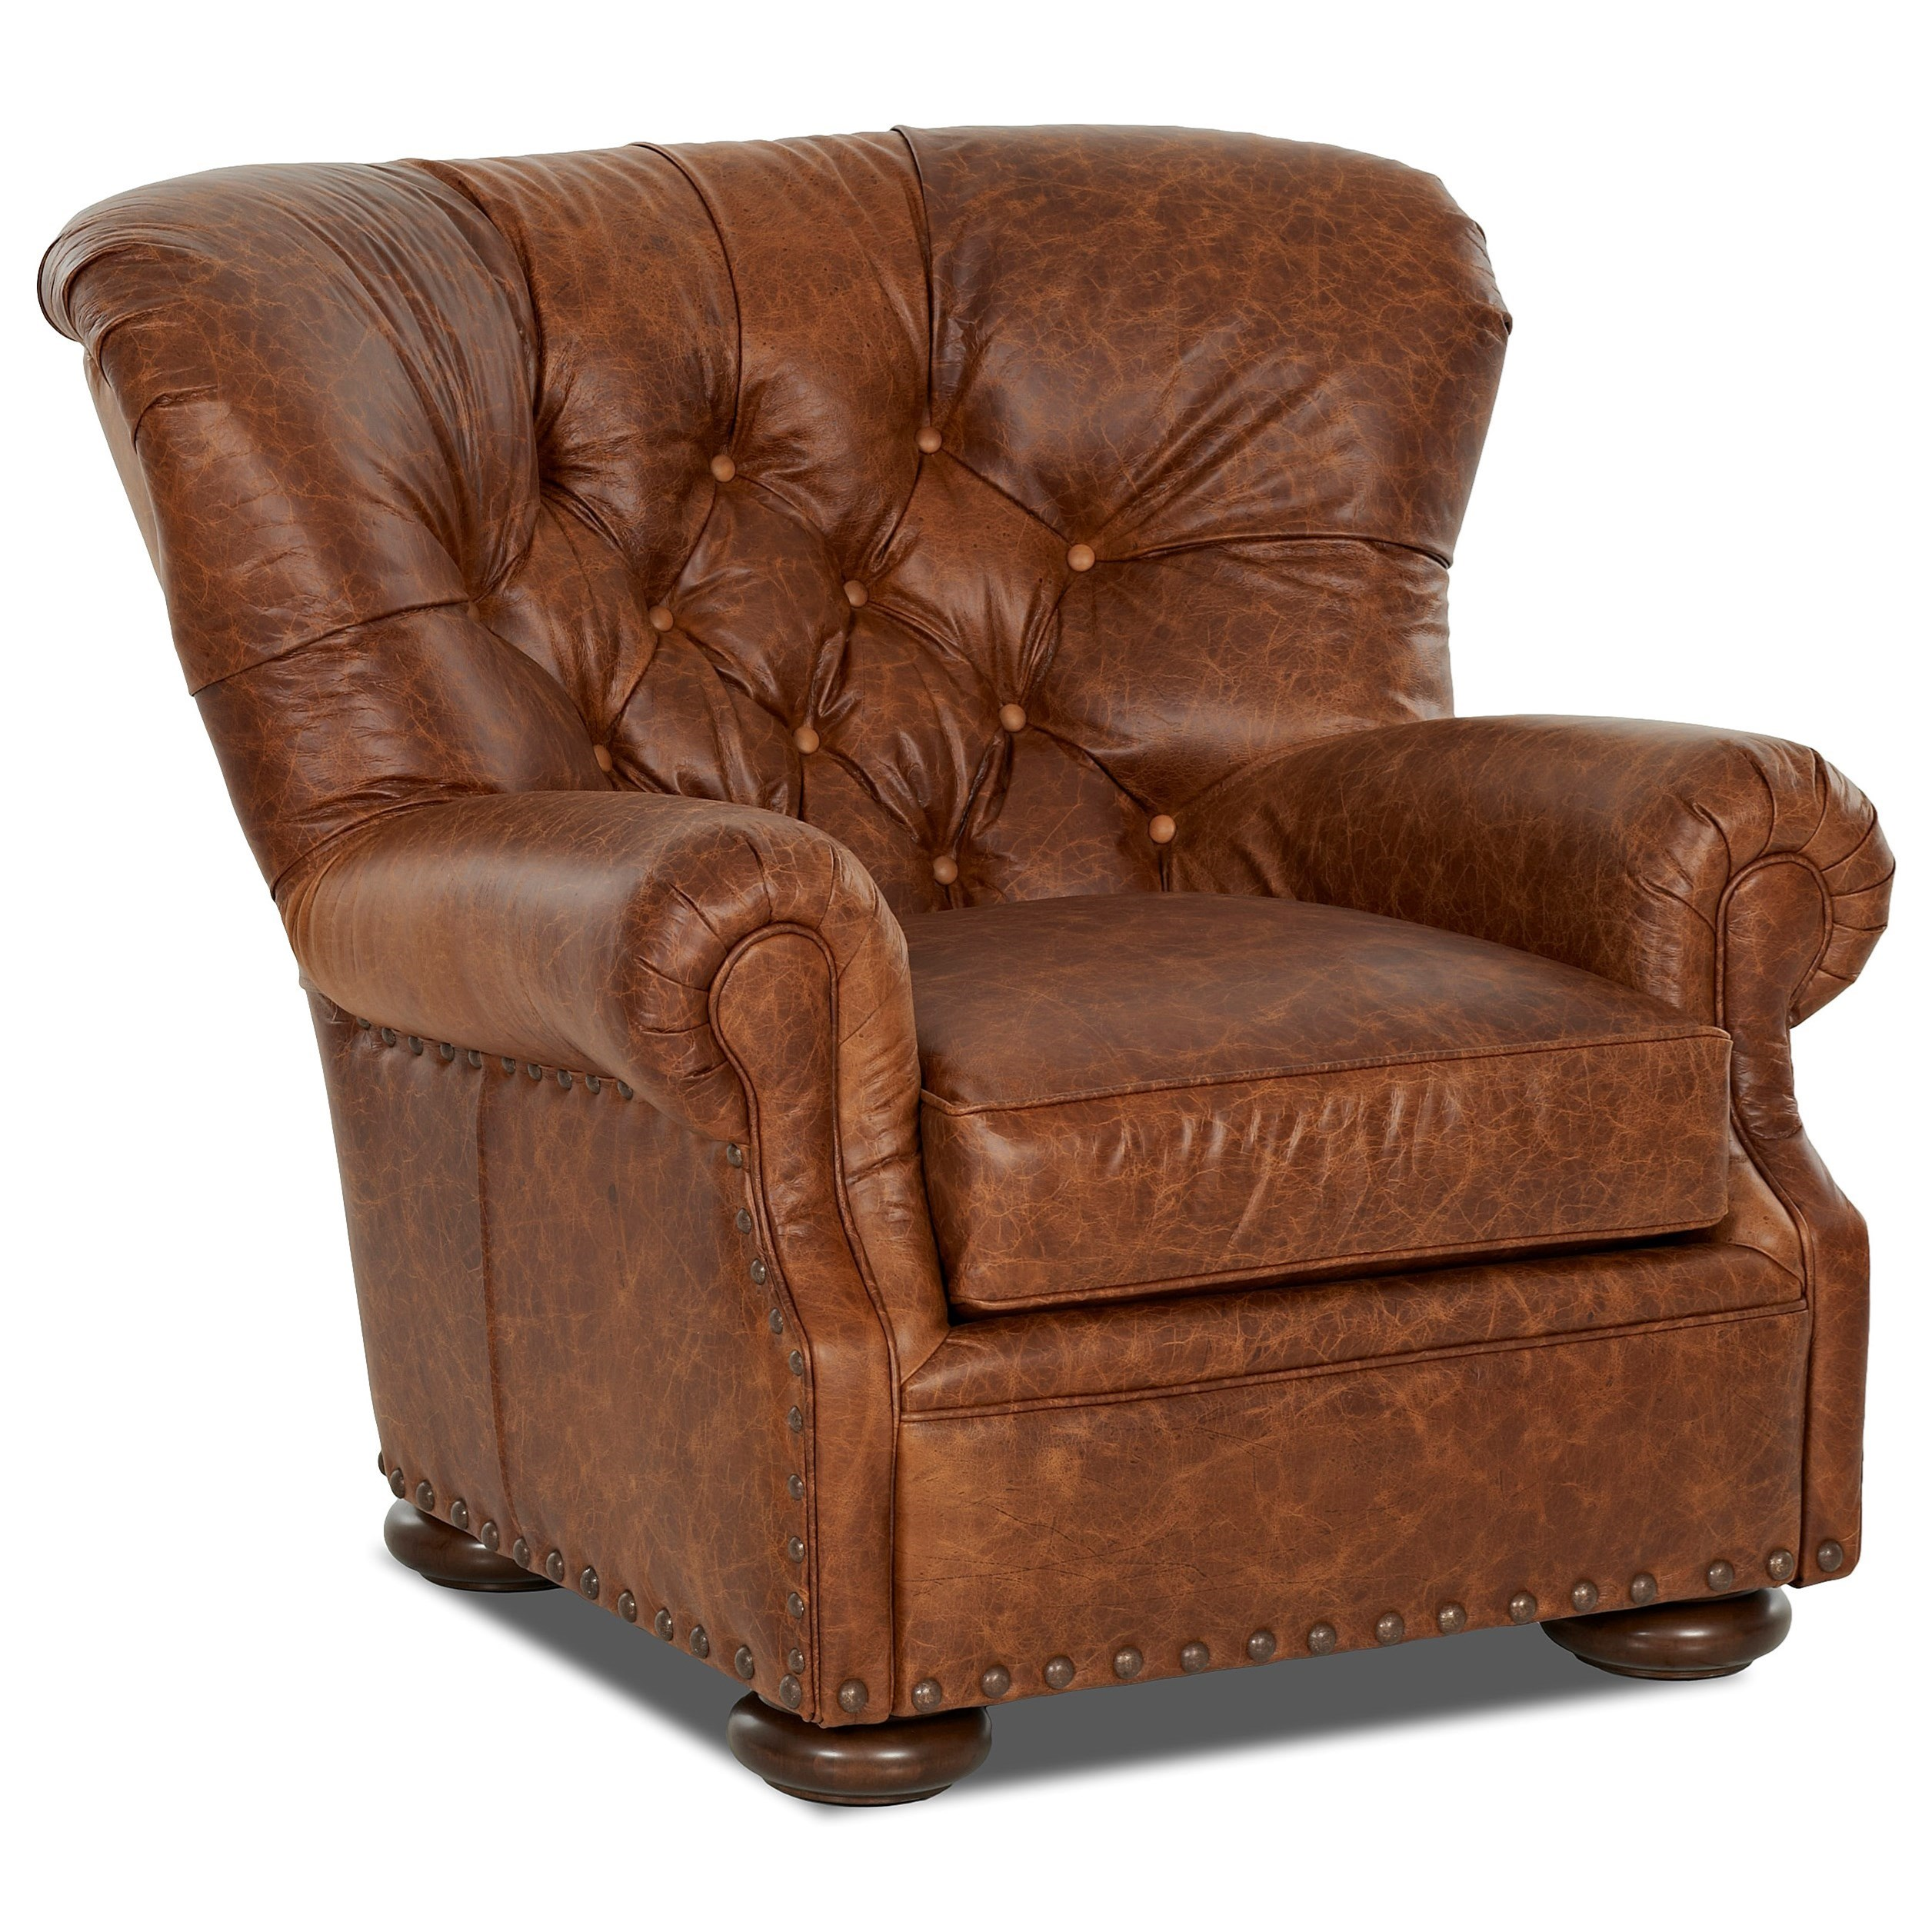 Klaussner Aspen Chair - Item Number: LD39910 C-CHAPS SADDLE